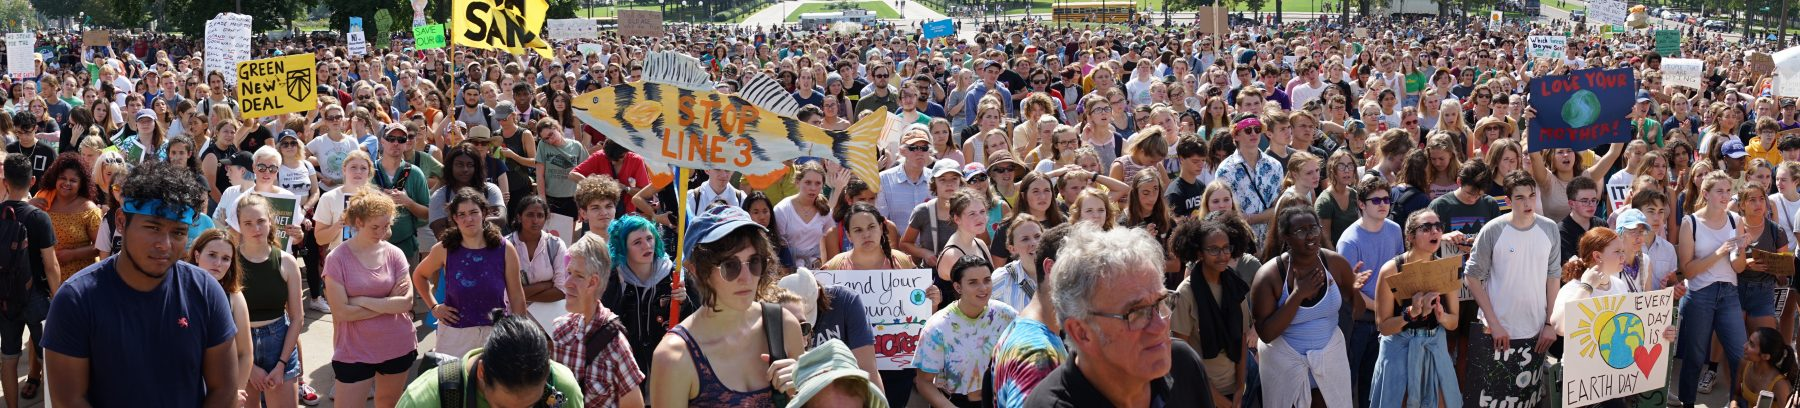 Climate crowd capitol